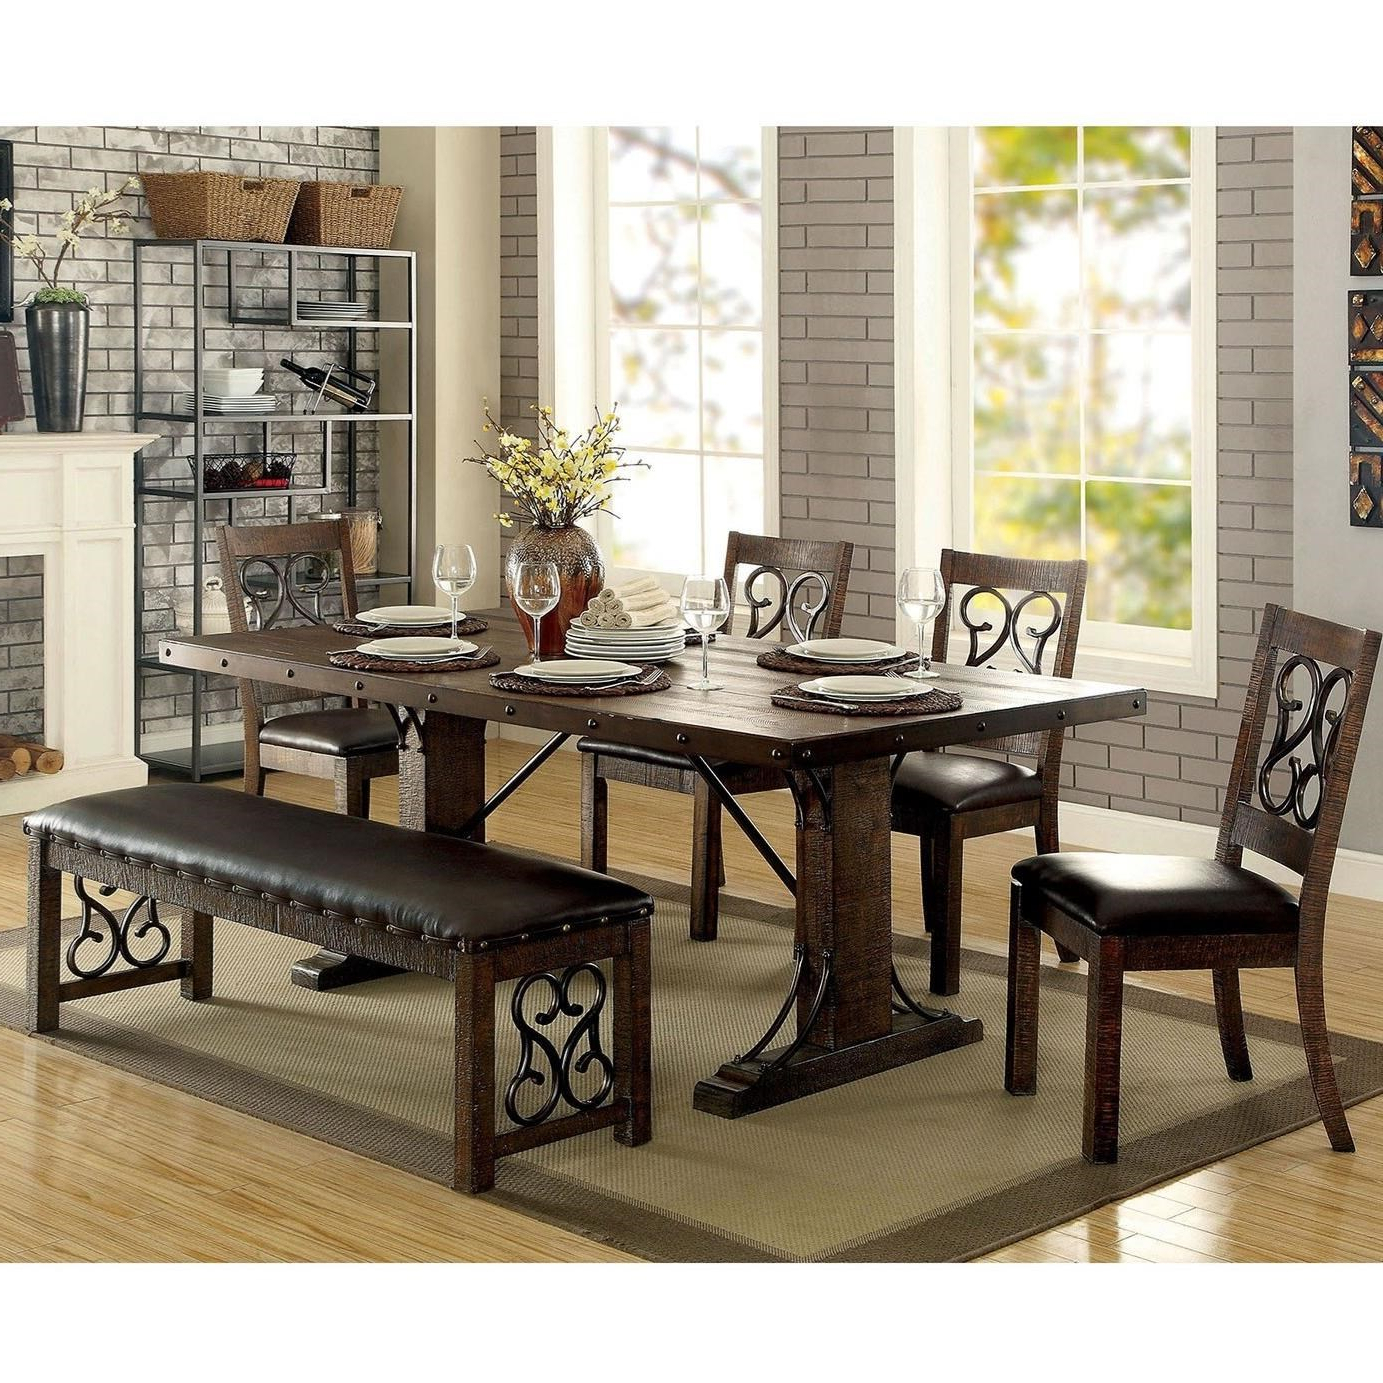 Paulina Dining Set With Bench Pertaining To Newest Paulina Panels Wall Décor (set Of 2) (View 18 of 20)